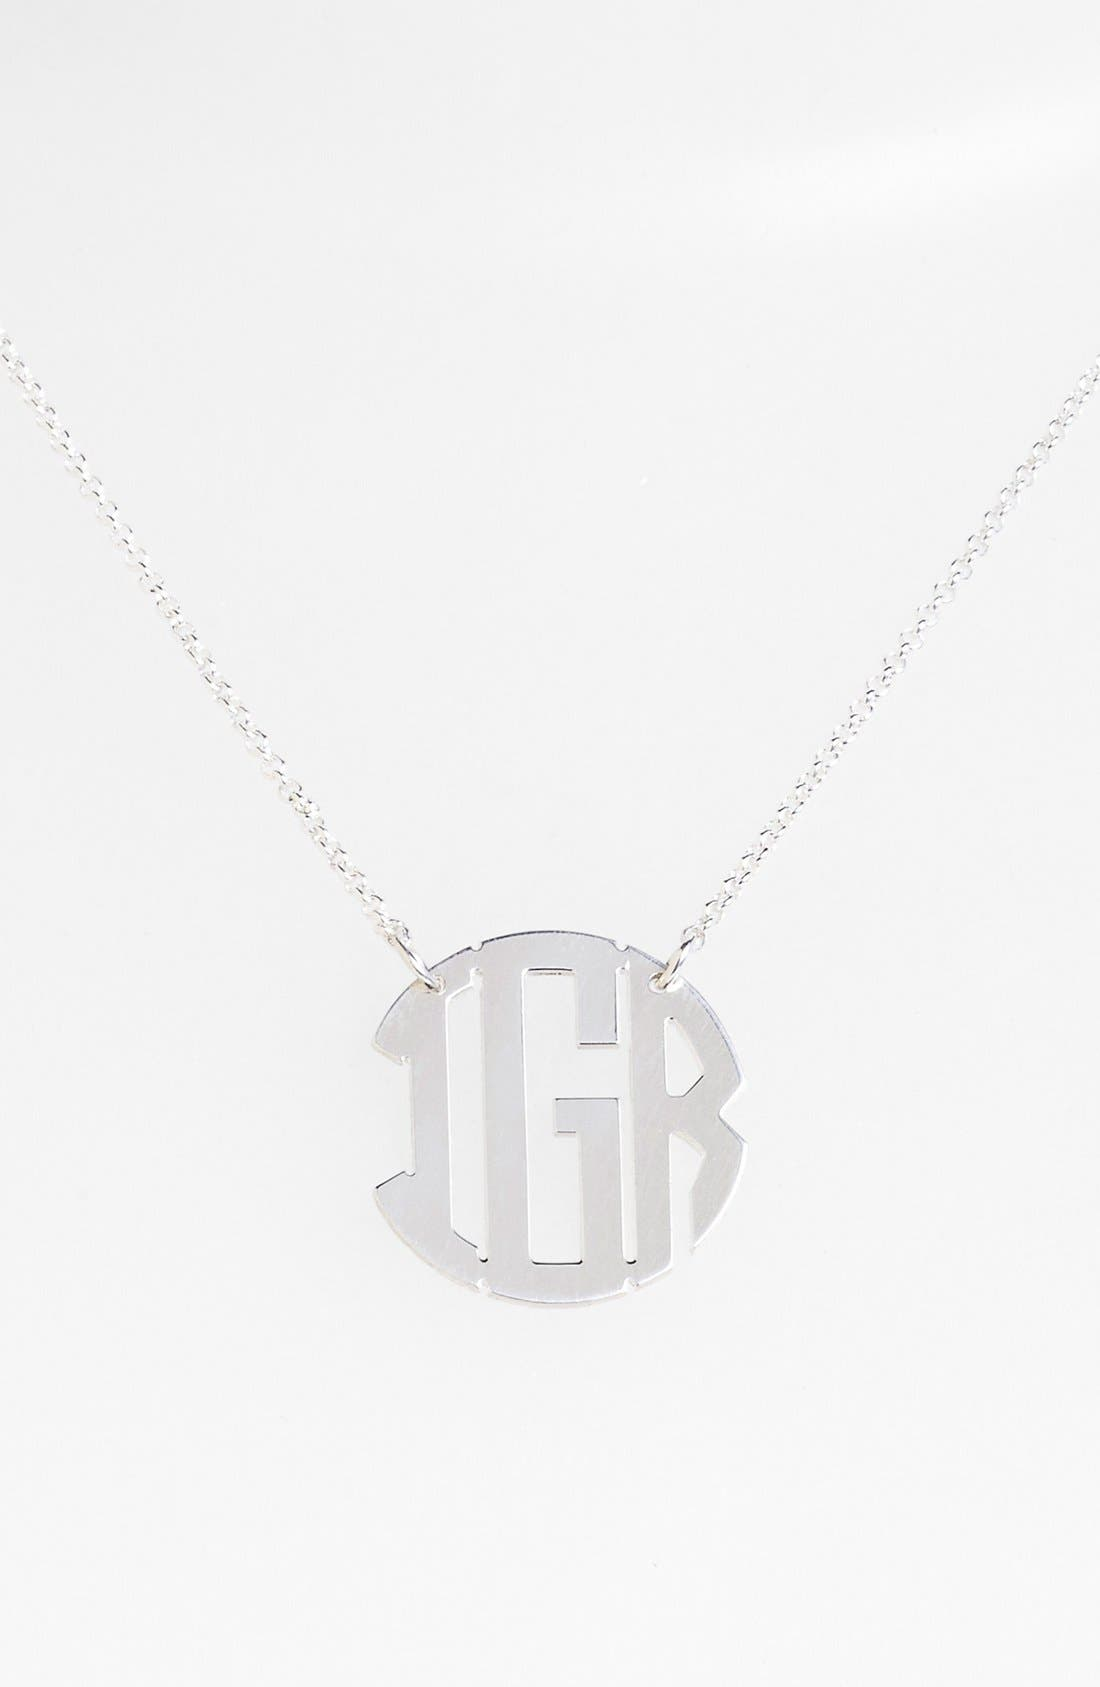 Personalized 3-Initial Block Monogram Necklace,                             Main thumbnail 1, color,                             040